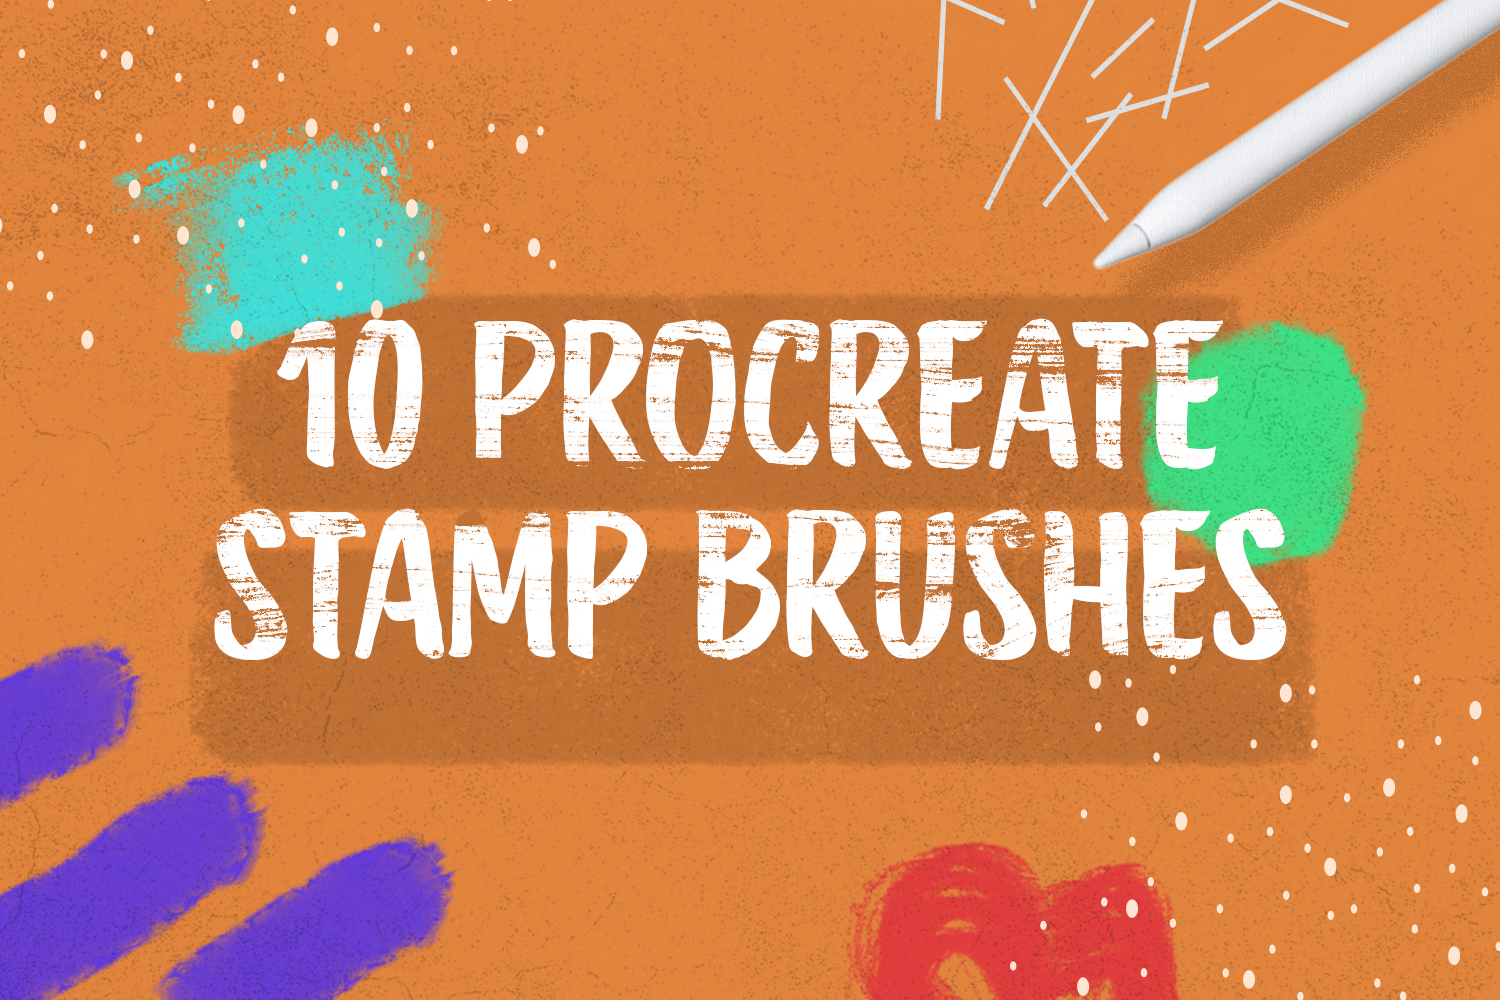 10 Procreate Stamp Brushes